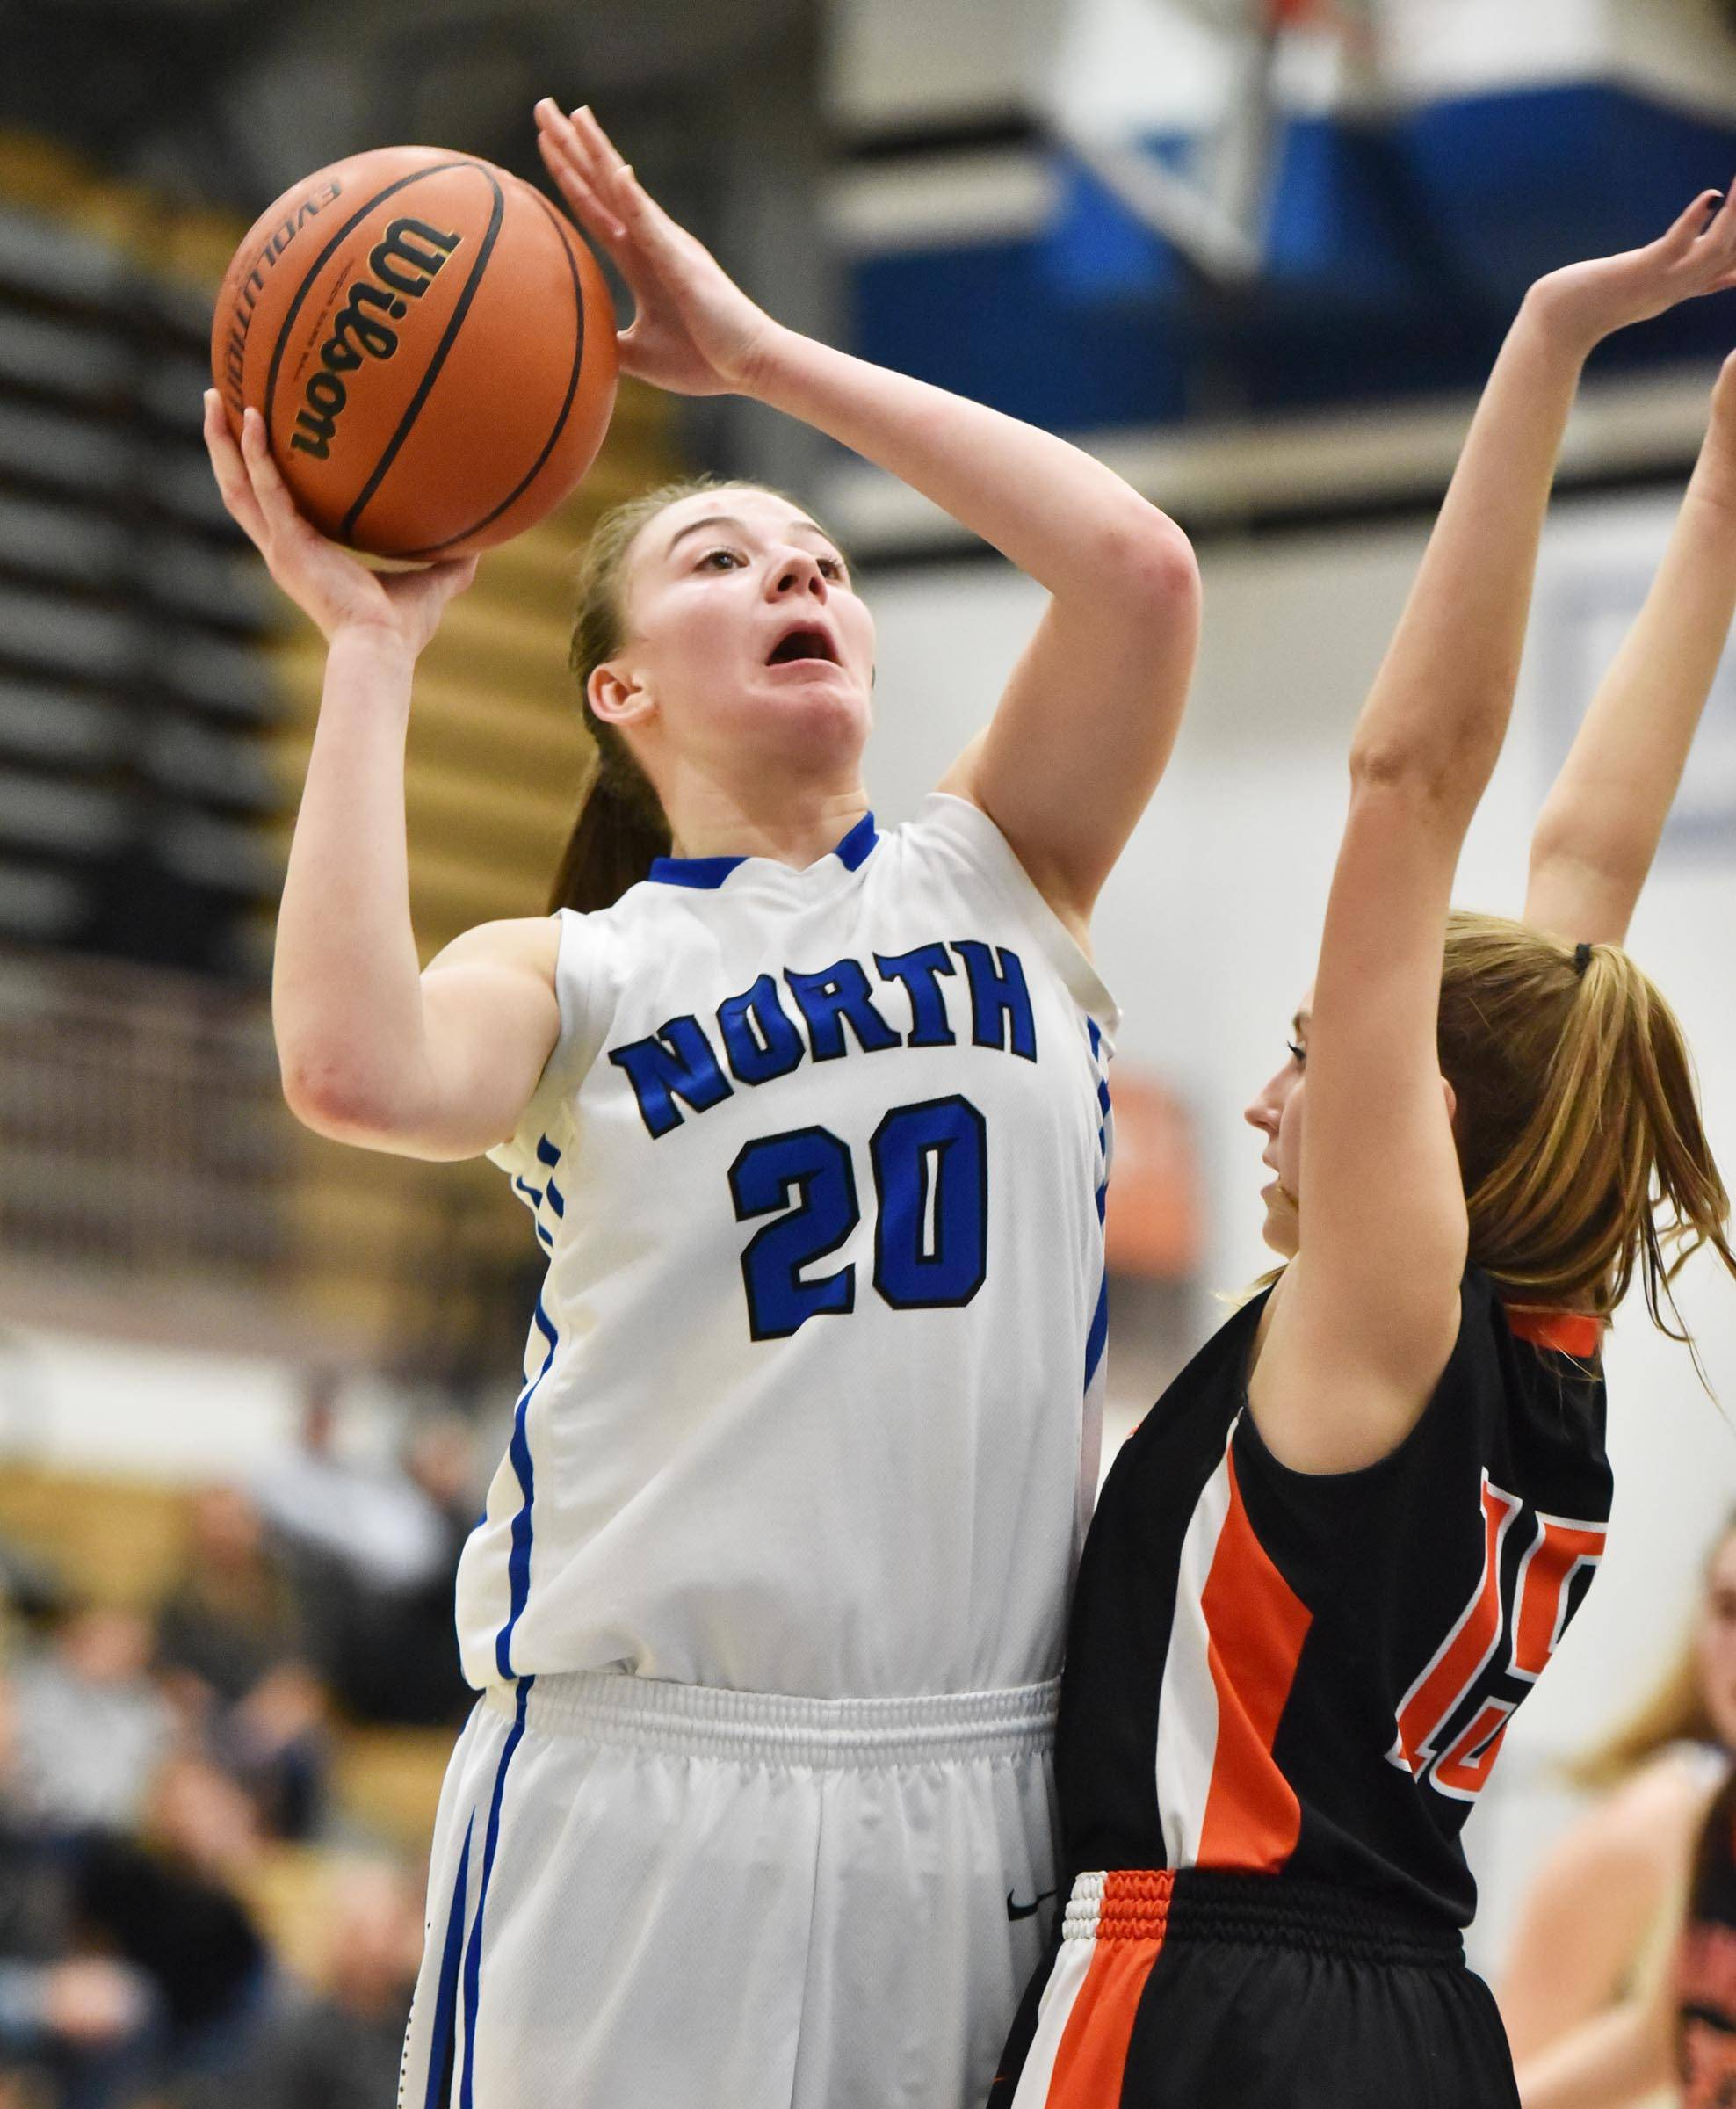 St. Charles North's Elizabeth Olsem goes up for a shot against St. Charles East's Nicole Jordan Tuesday at North High School in St. Charles.